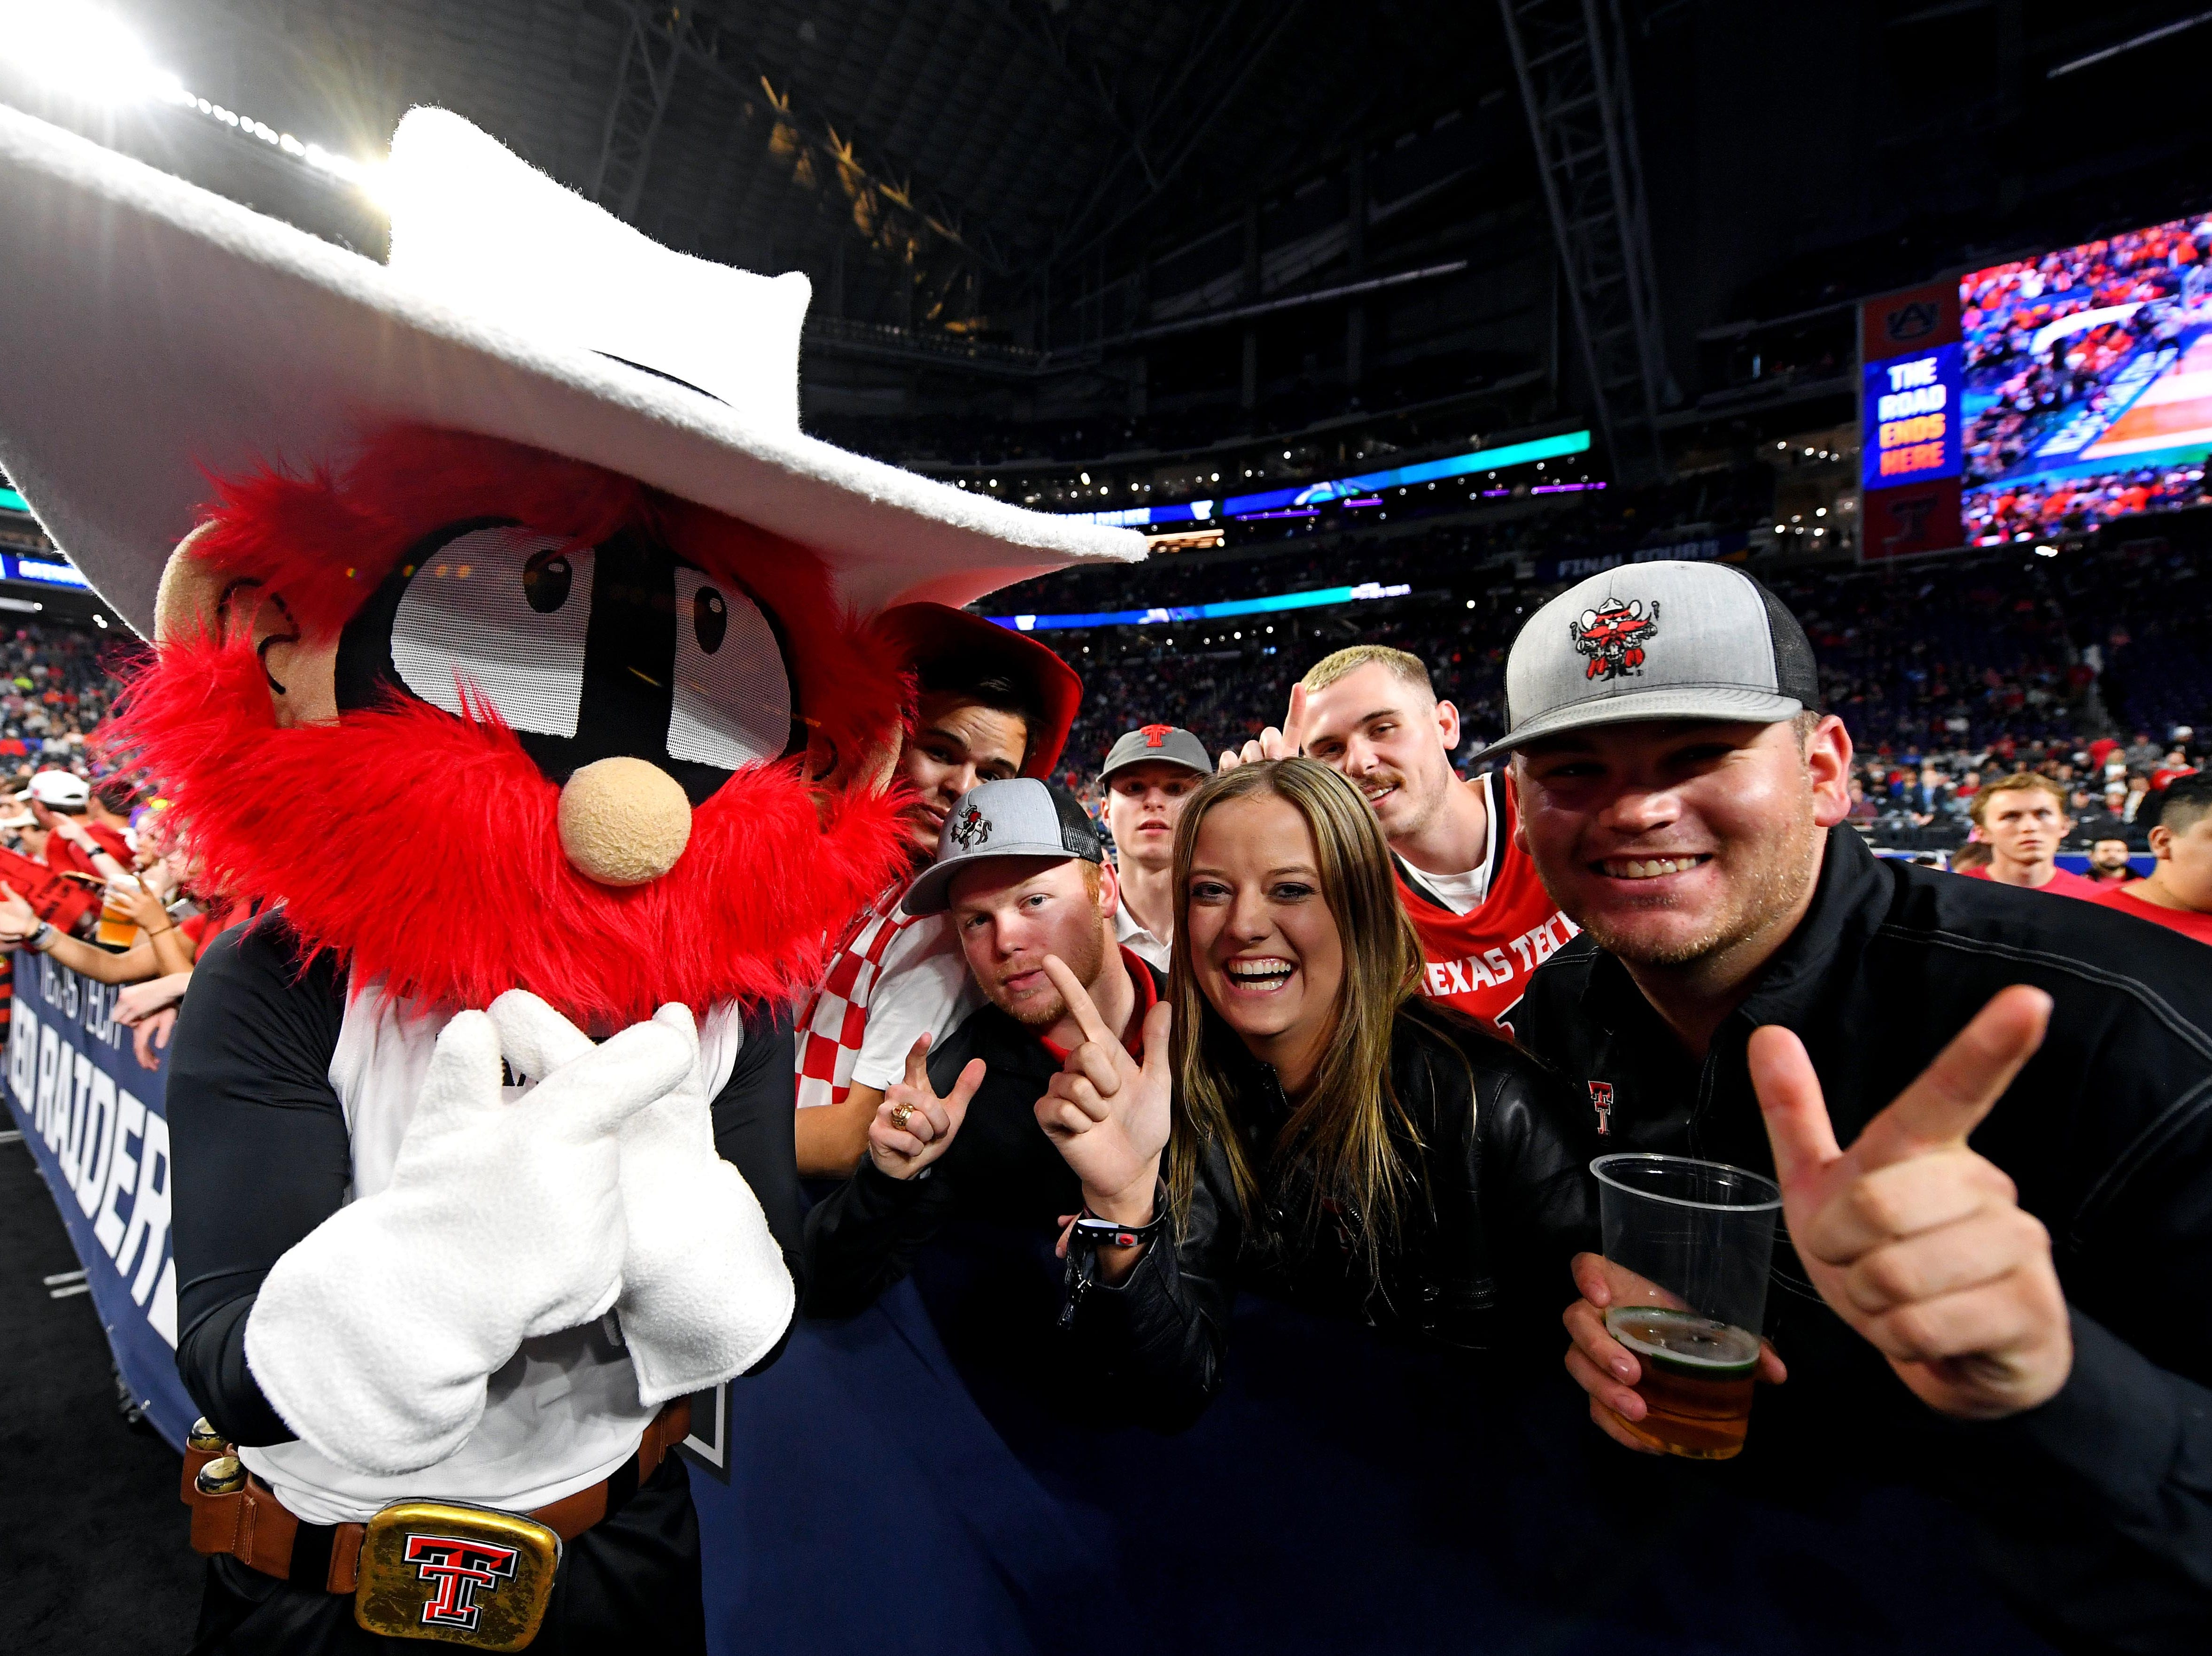 Apr 8, 2019; Minneapolis, MN, USA; Texas Tech Red Raiders fans cheer before the against the Virginia Cavaliers in the championship game of the 2019 men's Final Four at US Bank Stadium. Mandatory Credit: Bob Donnan-USA TODAY Sports